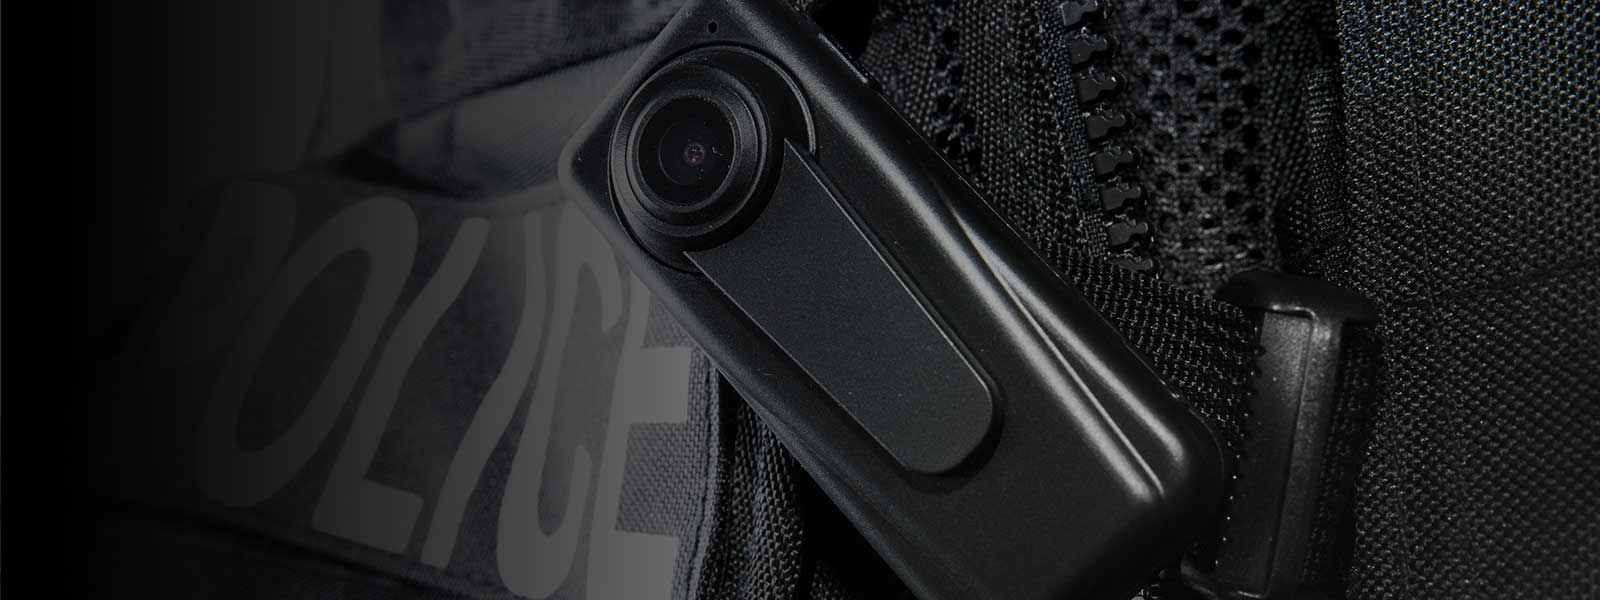 Police Body Worn Cameras: What Prosecutors Need to Know